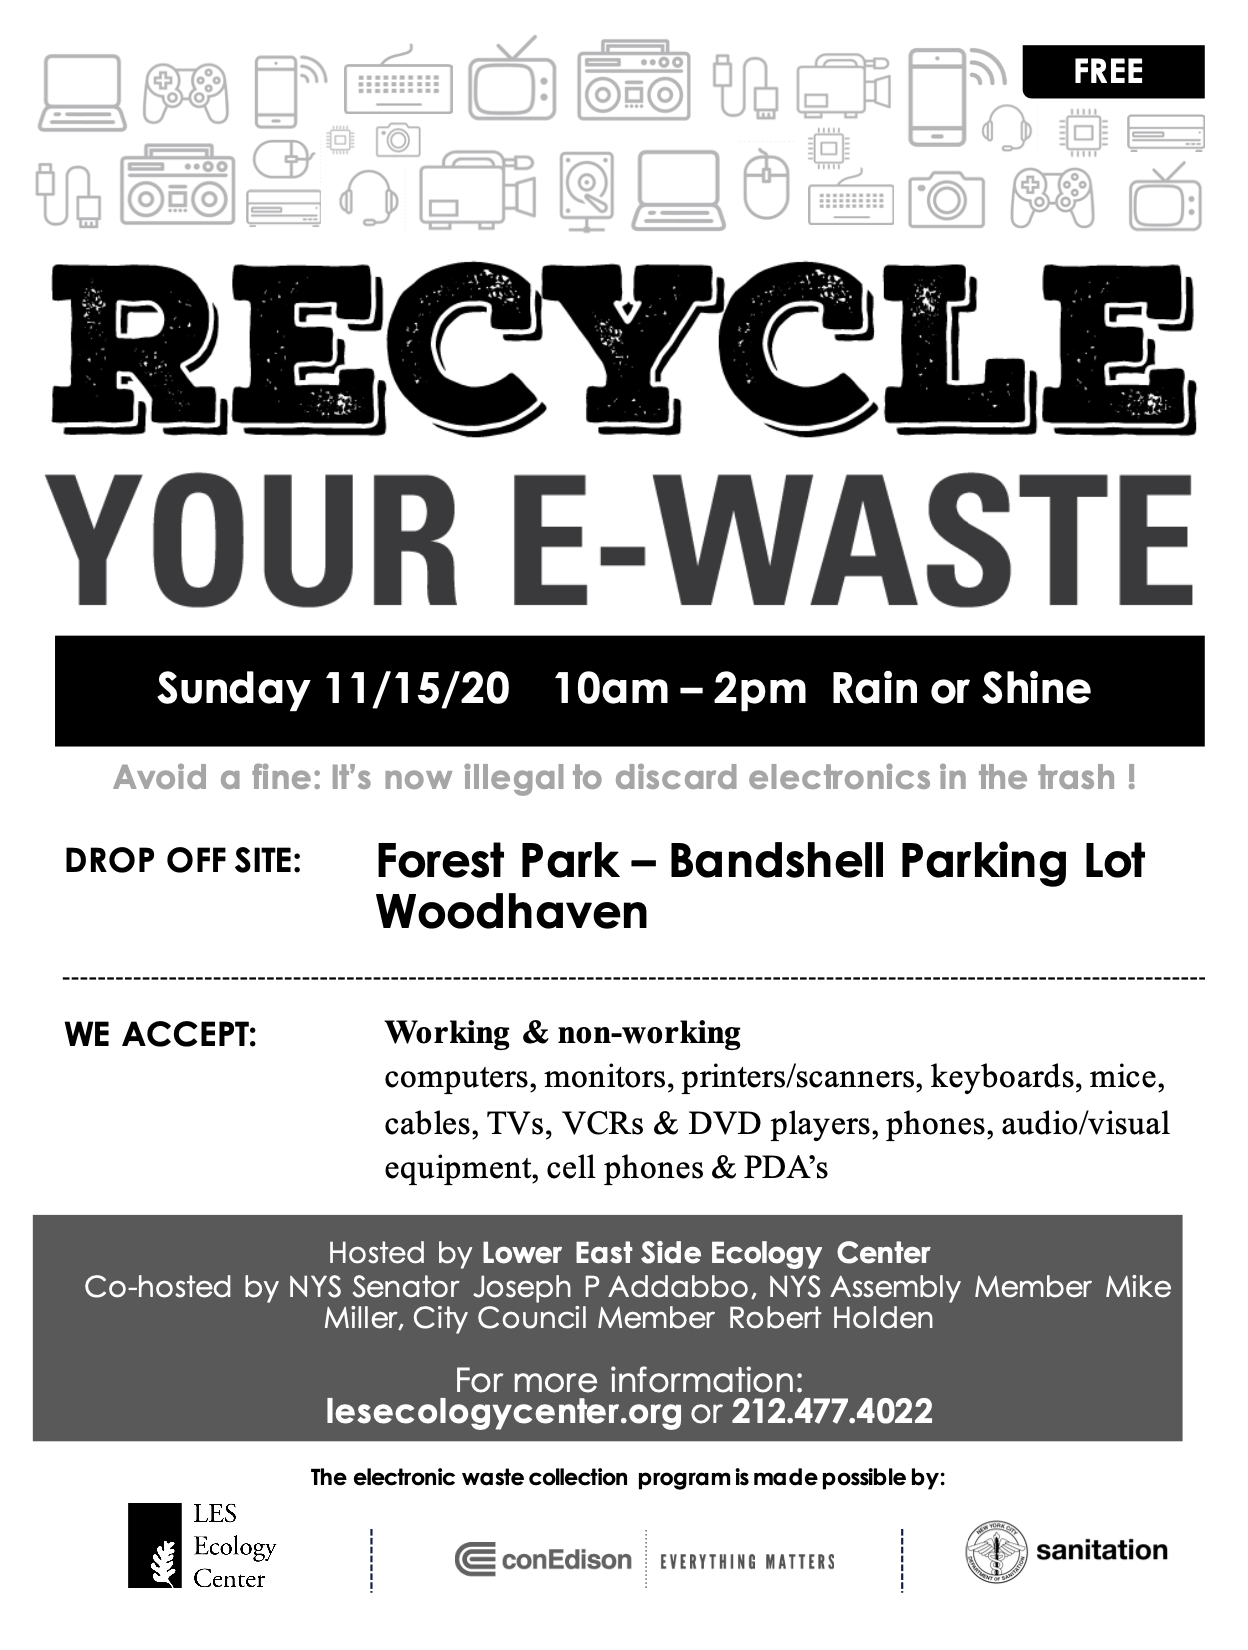 E-Waste Recycling Event: Forest Park